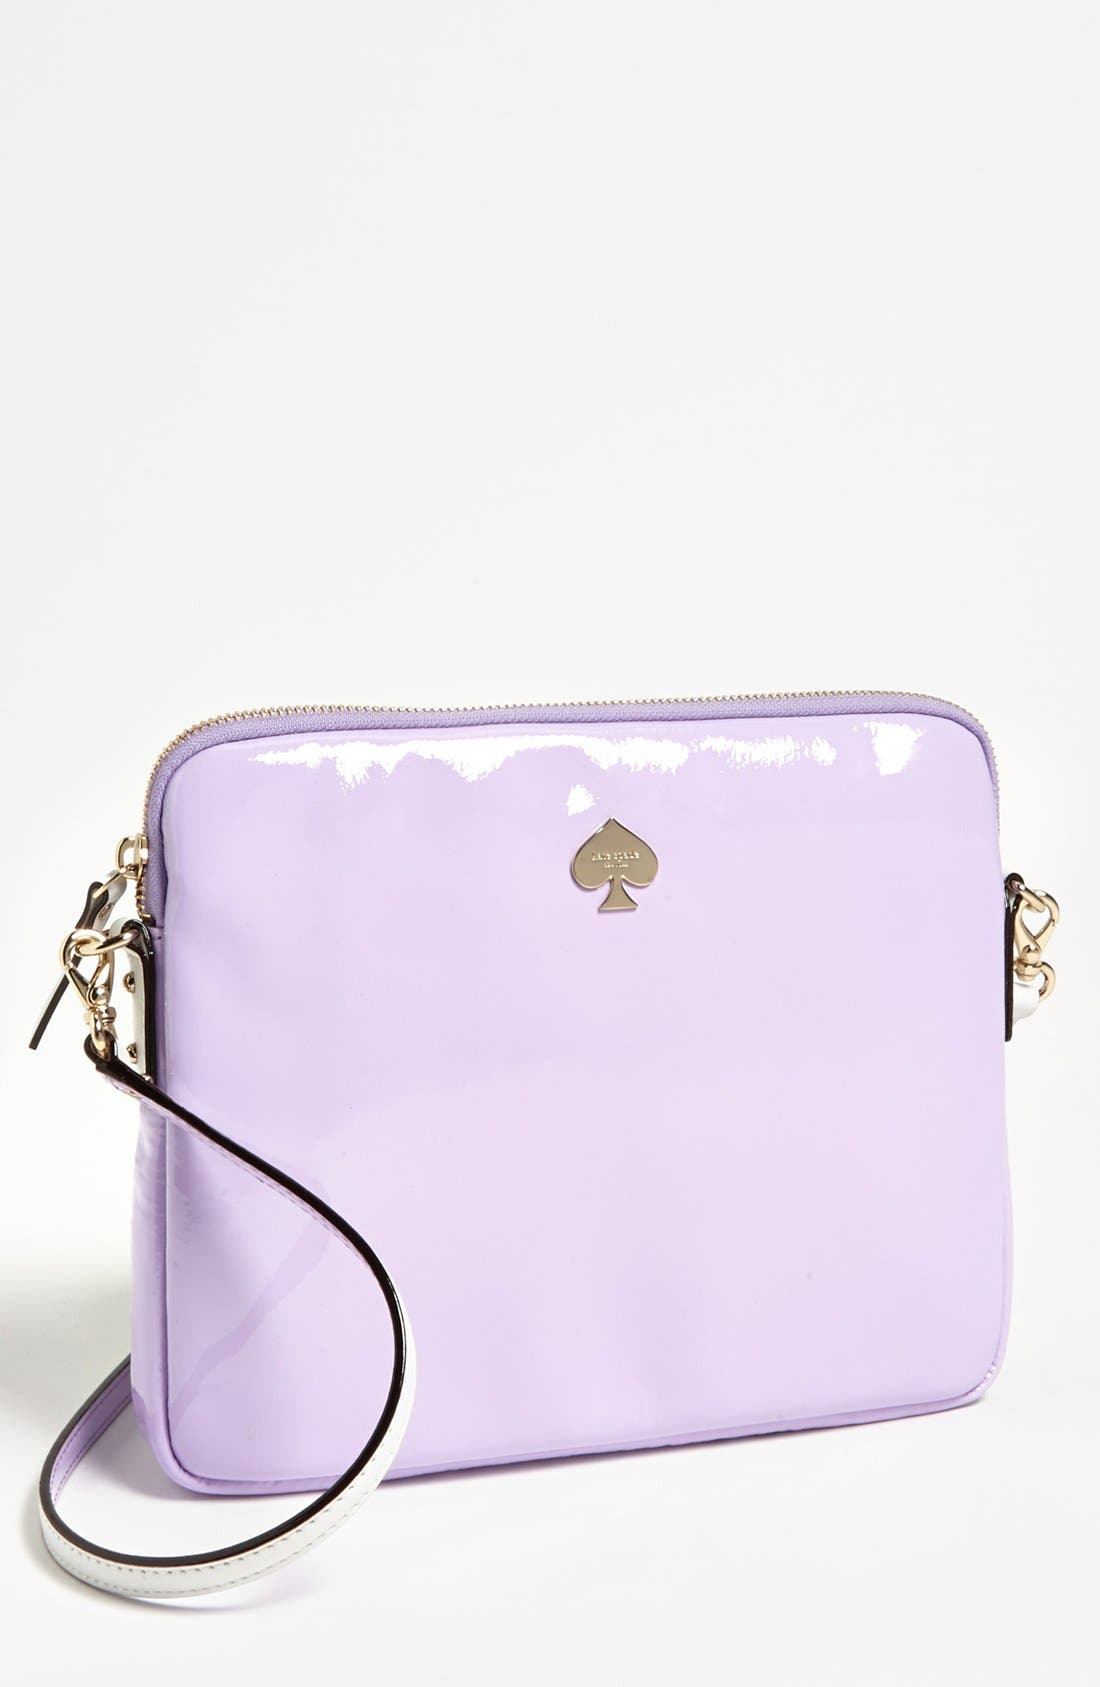 Main Image - kate spade new york 'bryce - flicker' patent leather iPad crossbody bag